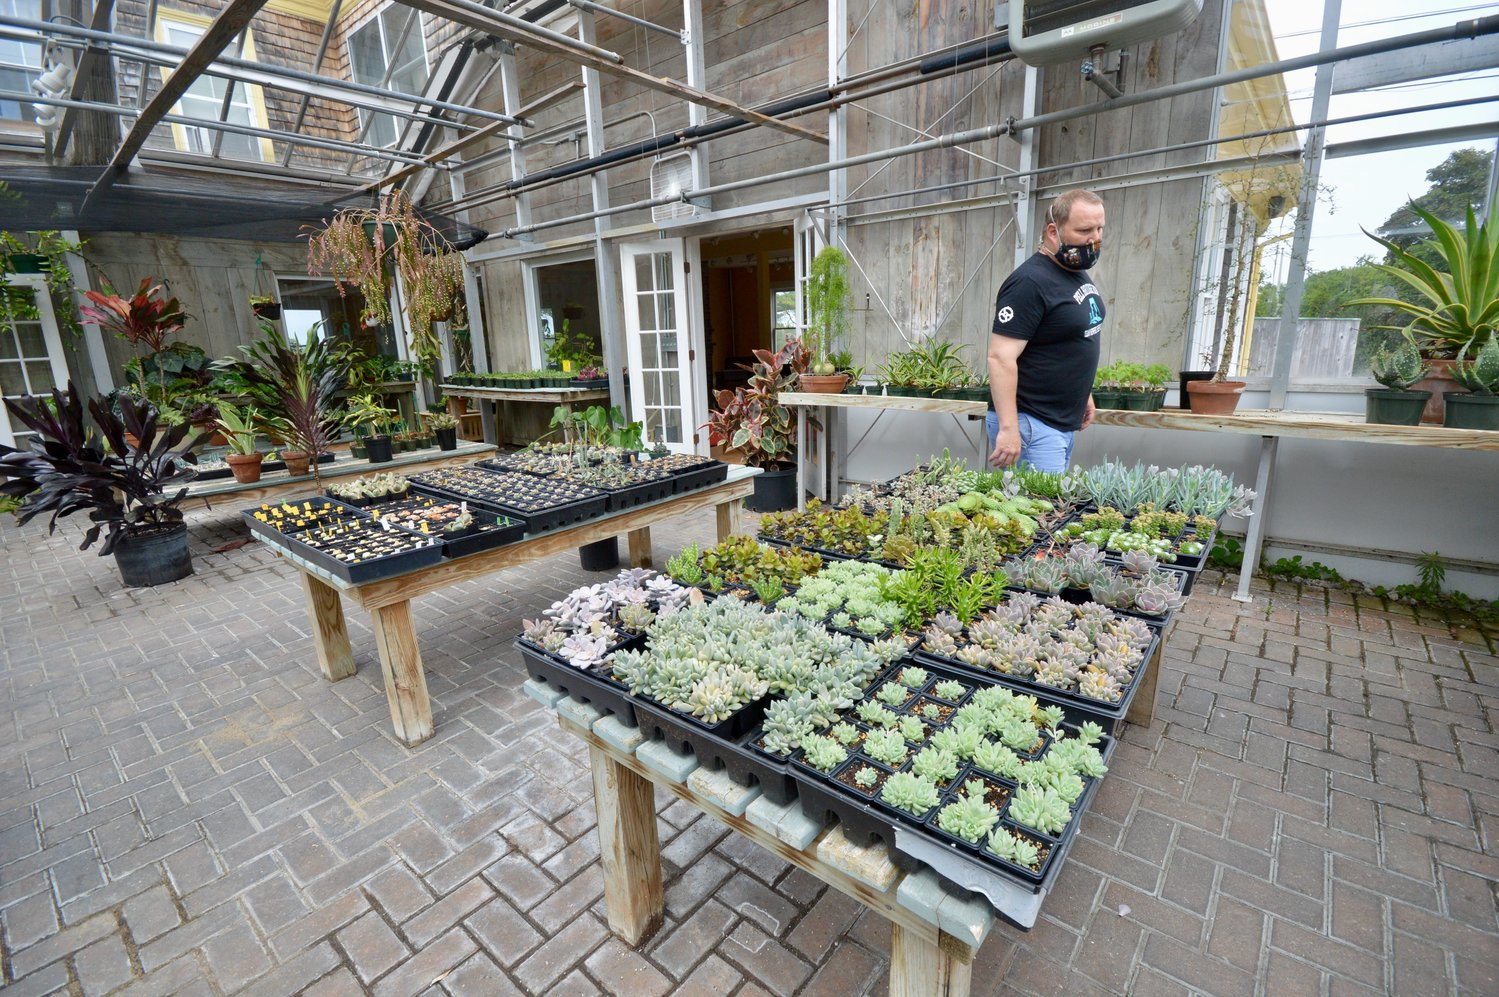 Matt Gray in Ragged Island's greenhouse that holds hundreds of succulent plants that will be available for sale once the farm brewery opens.